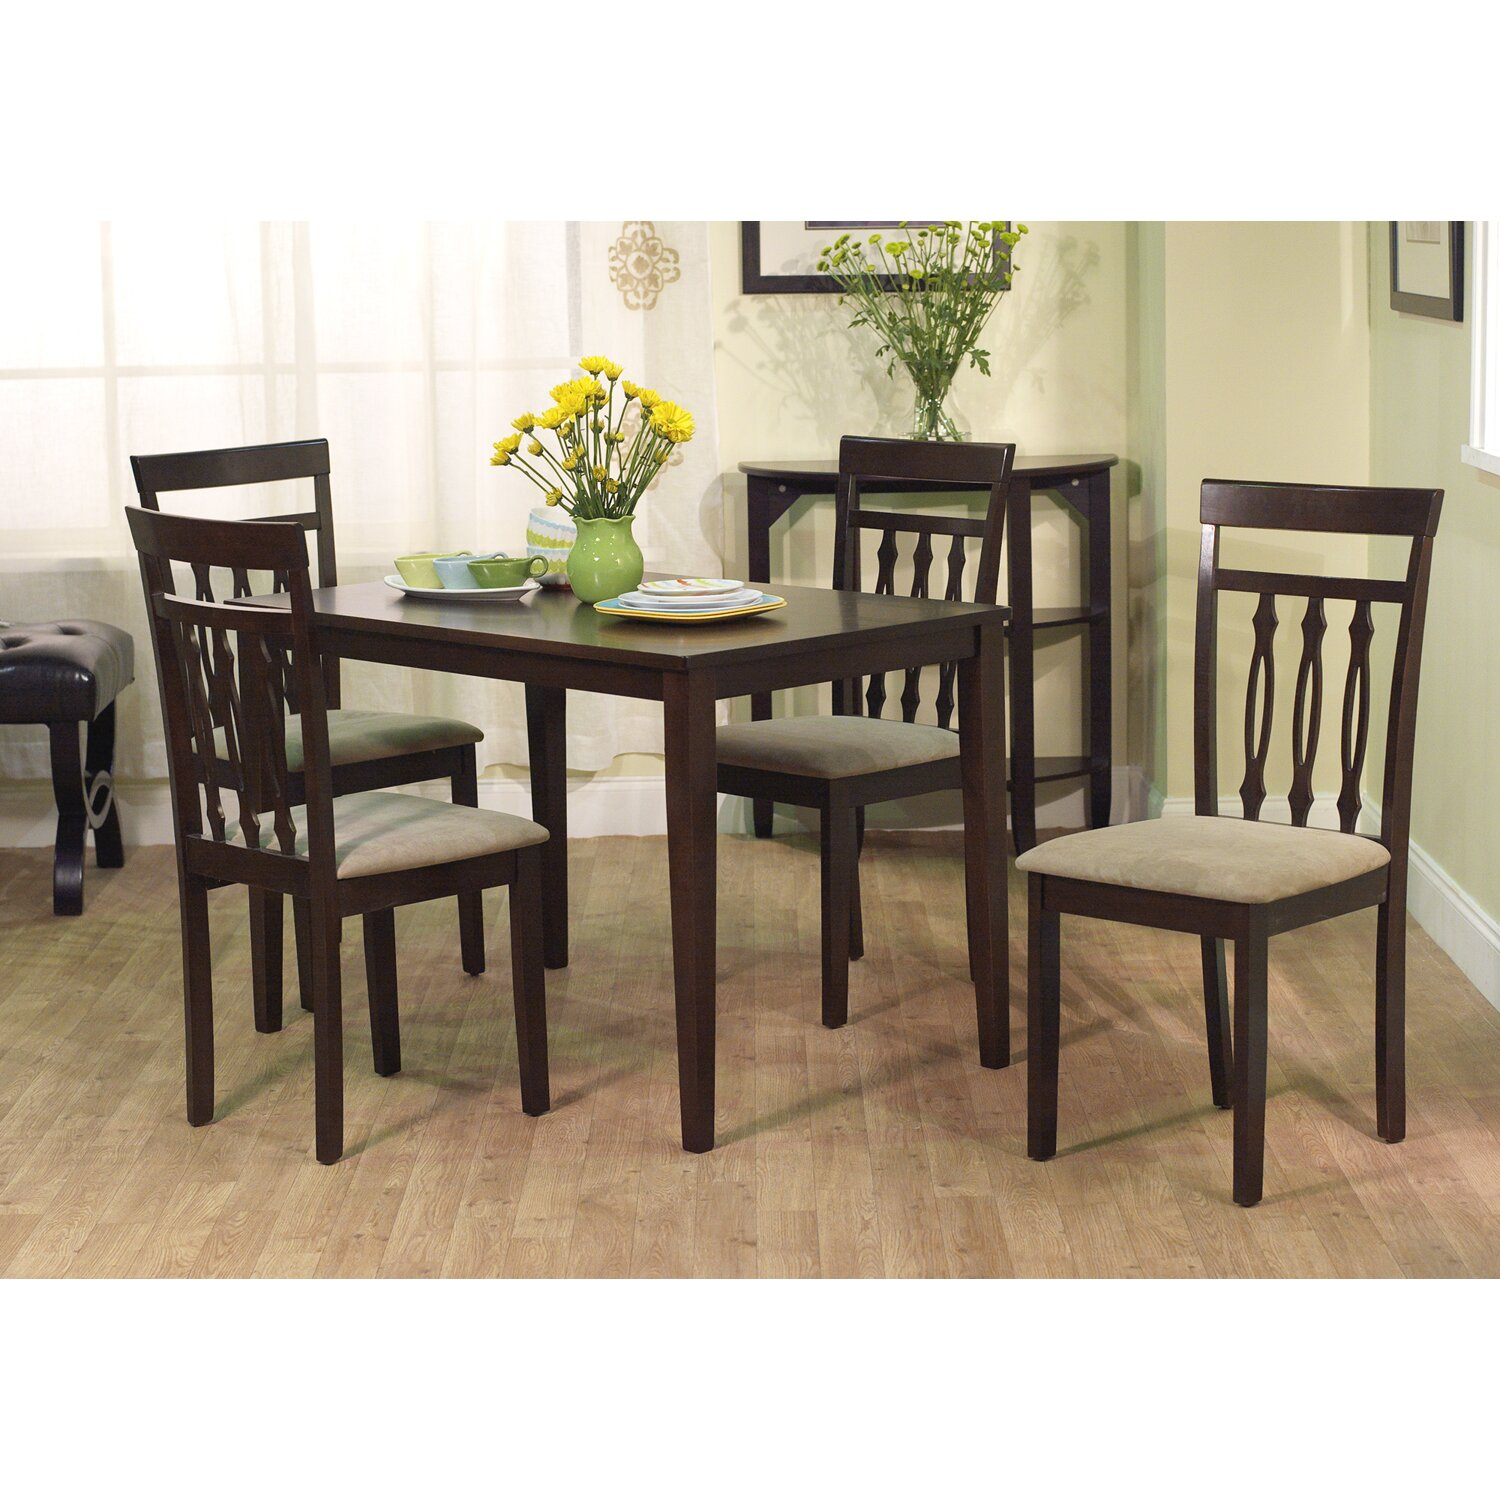 August grove vivien 5 piece dining set reviews wayfair for 5 piece dining room sets